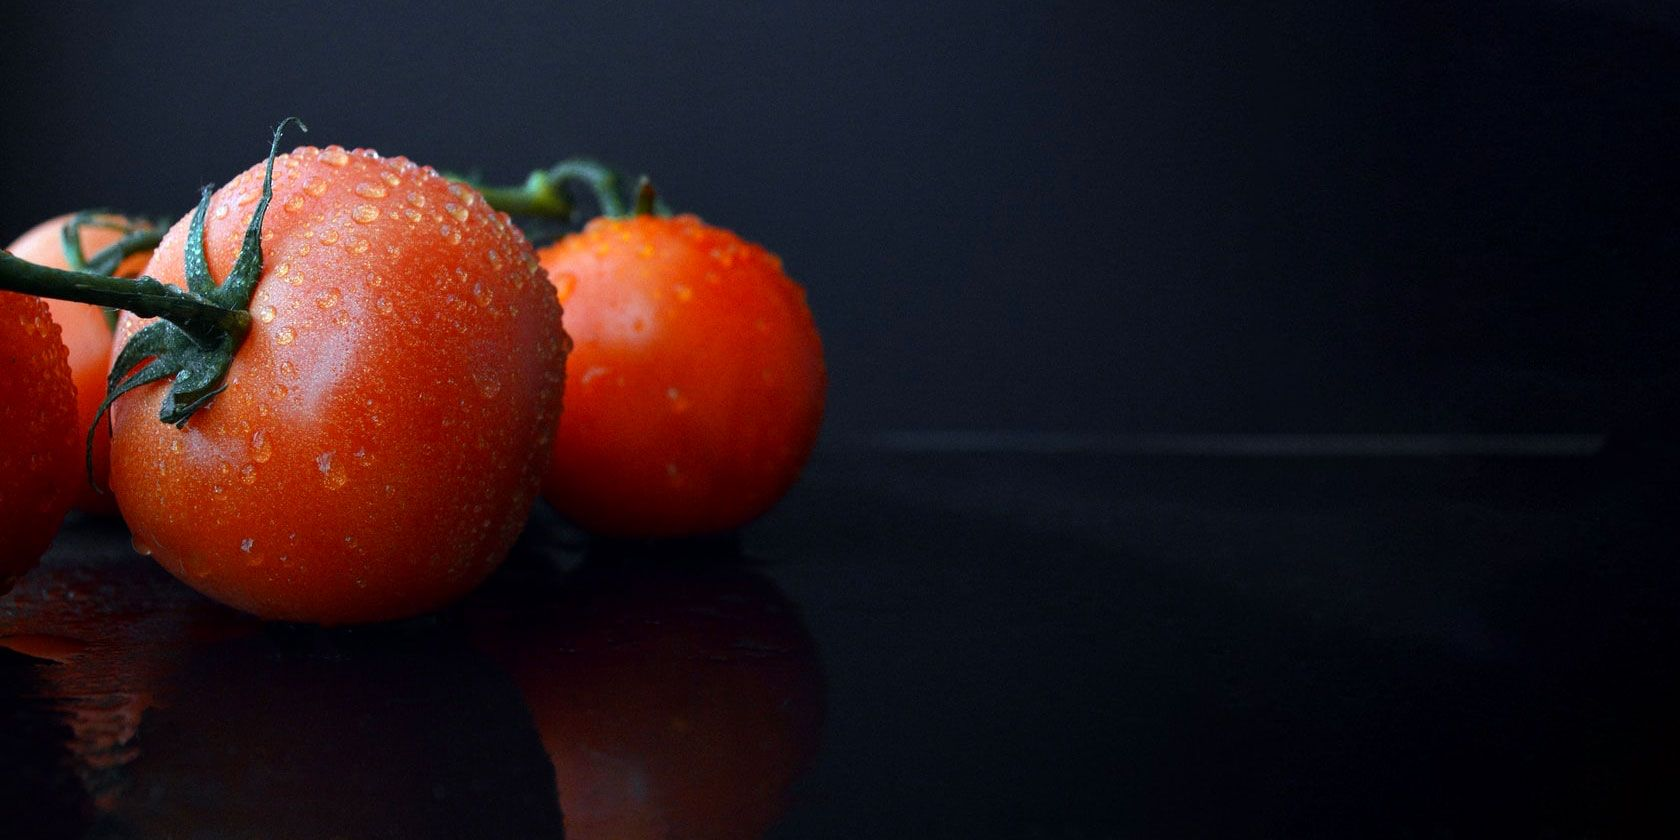 Step Up Your Pomodoro Productivity With These 6 Methods